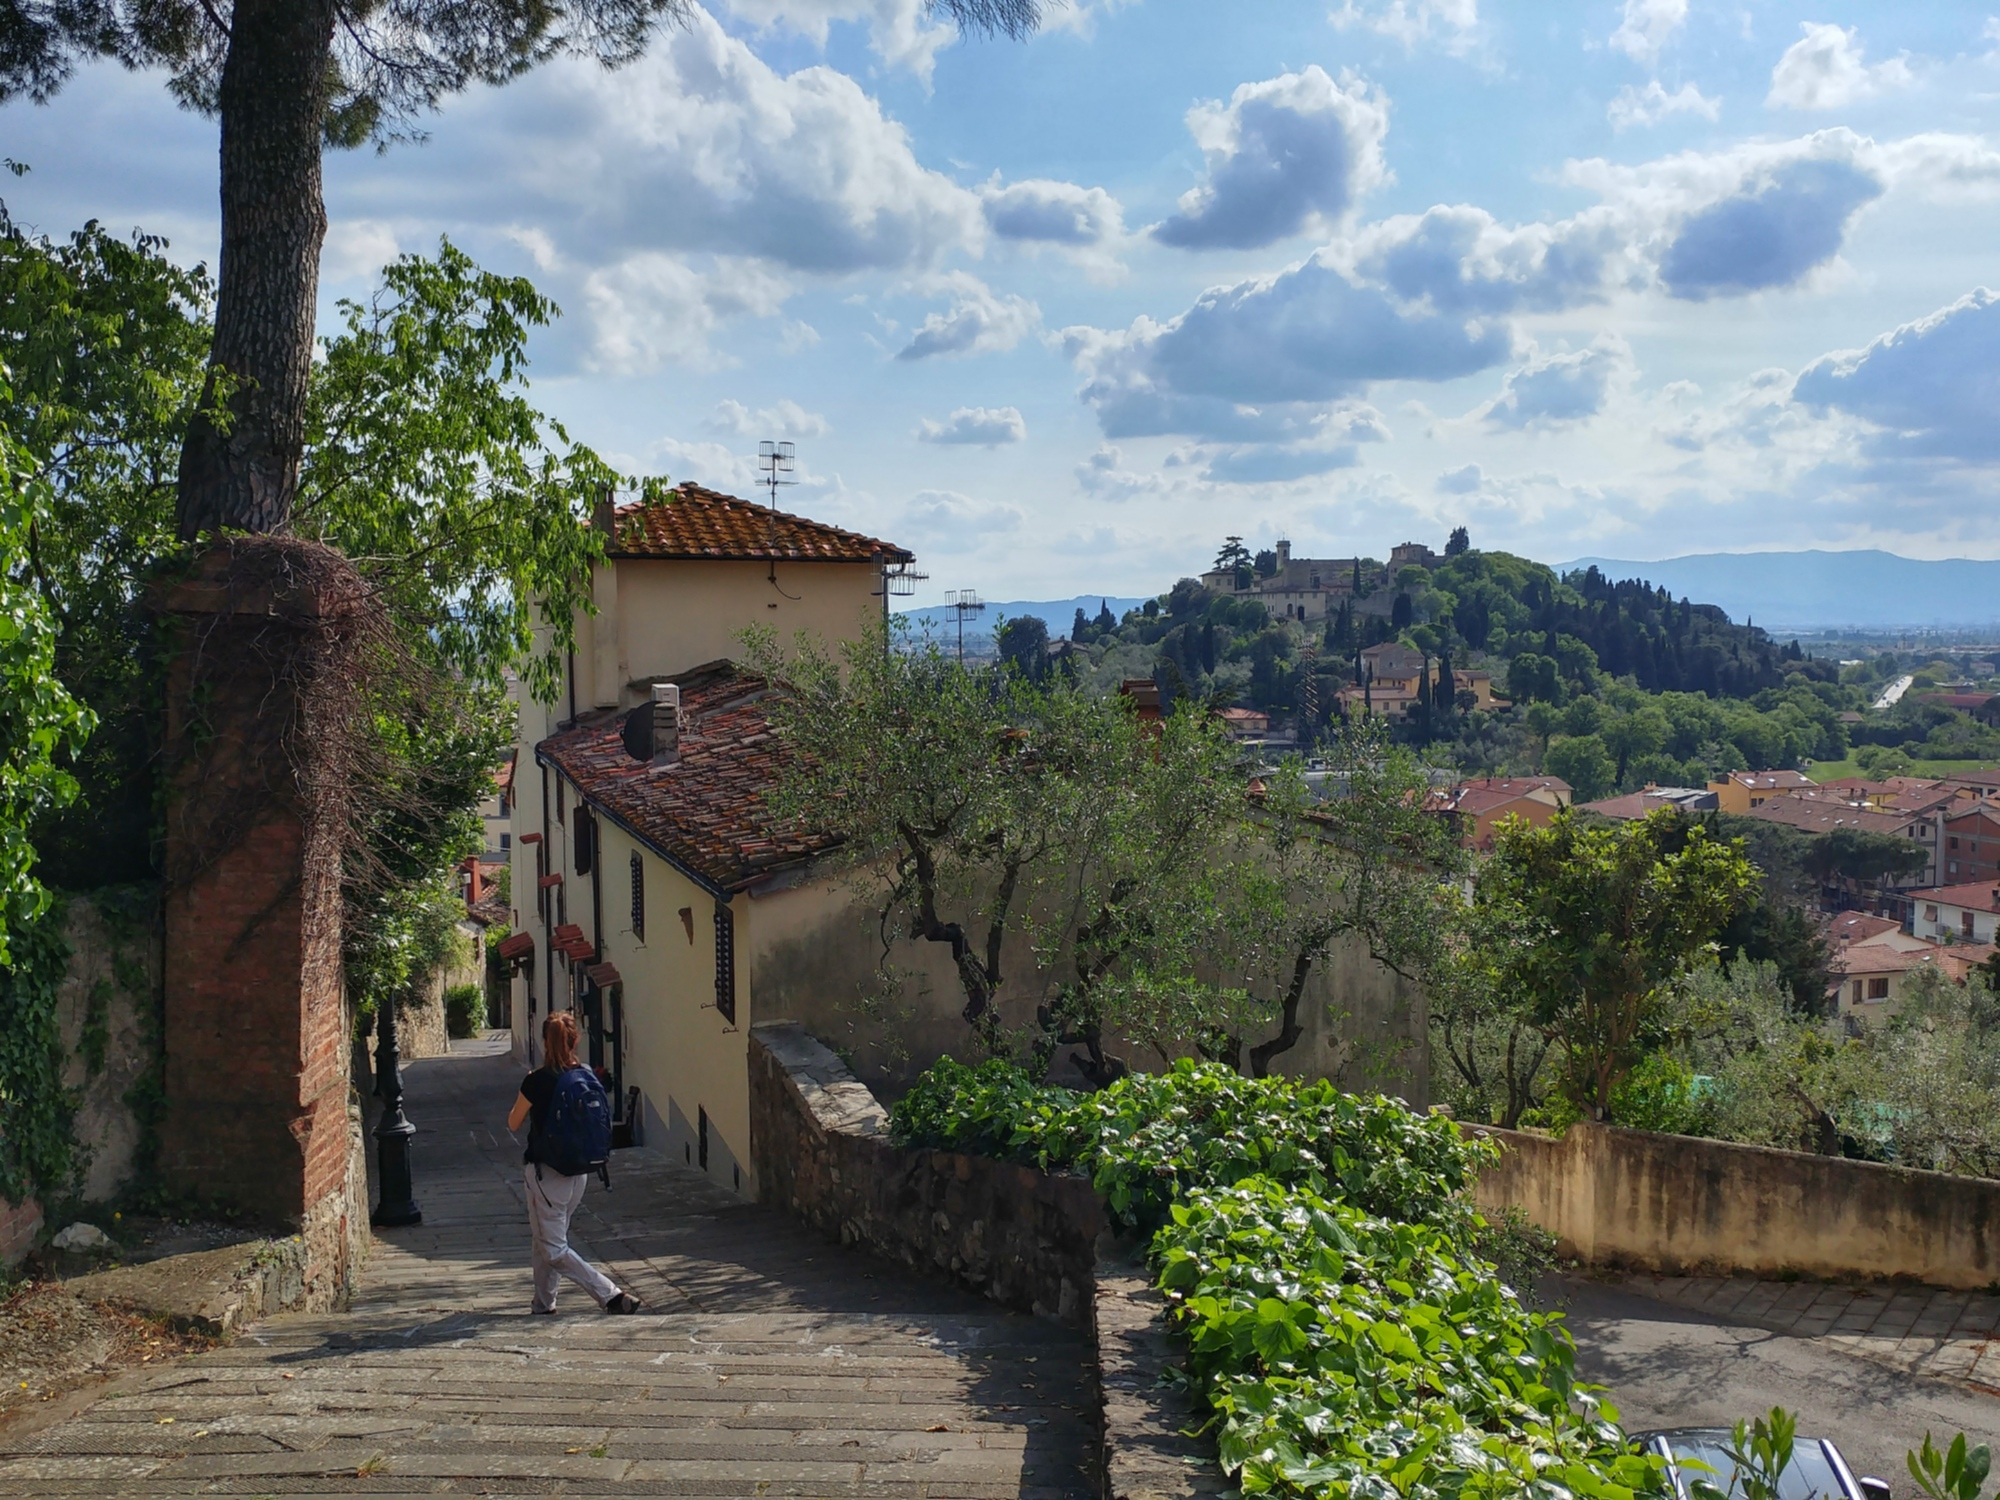 Trekking in Tuscany: itineraries and trails | Visit Tuscany